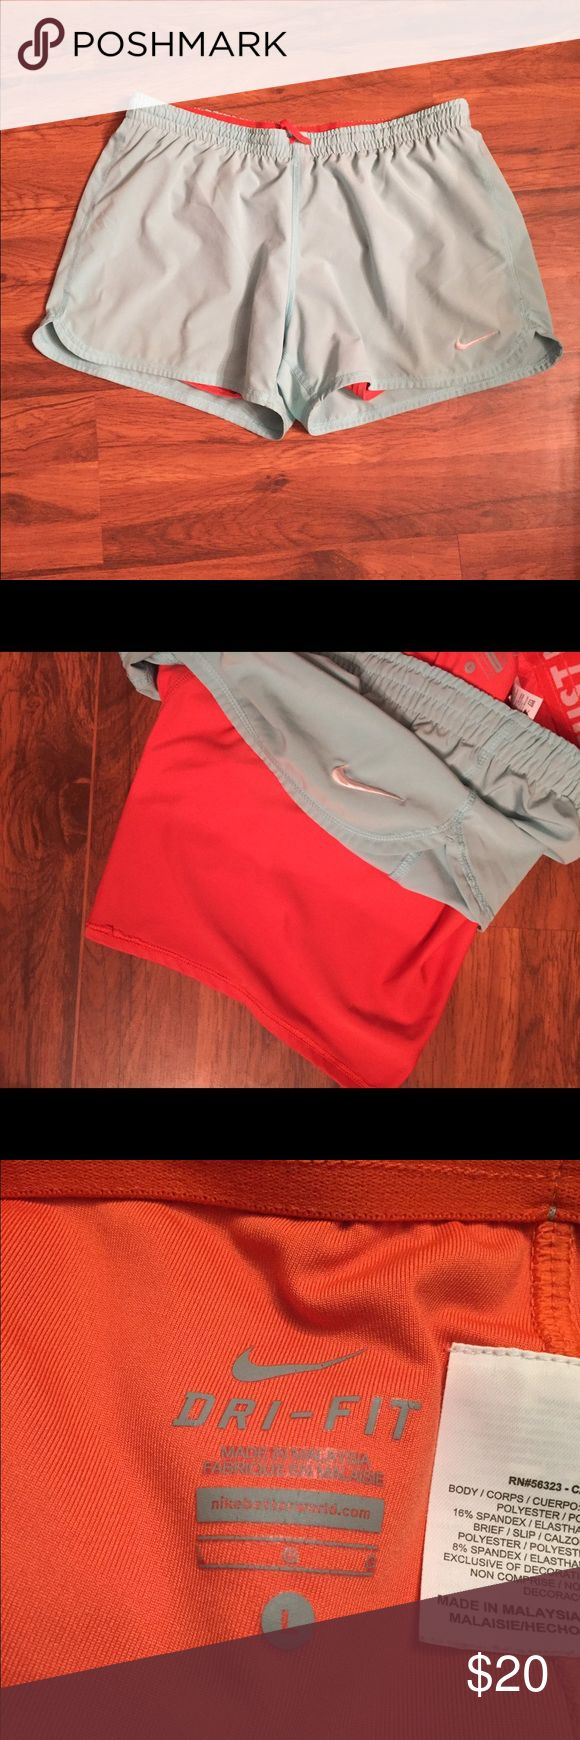 Nike Dri-Fit Compression Shorts Light blue Nike shorts with built in Orange compression underwear. Dri-fit and size large. Nike Shorts